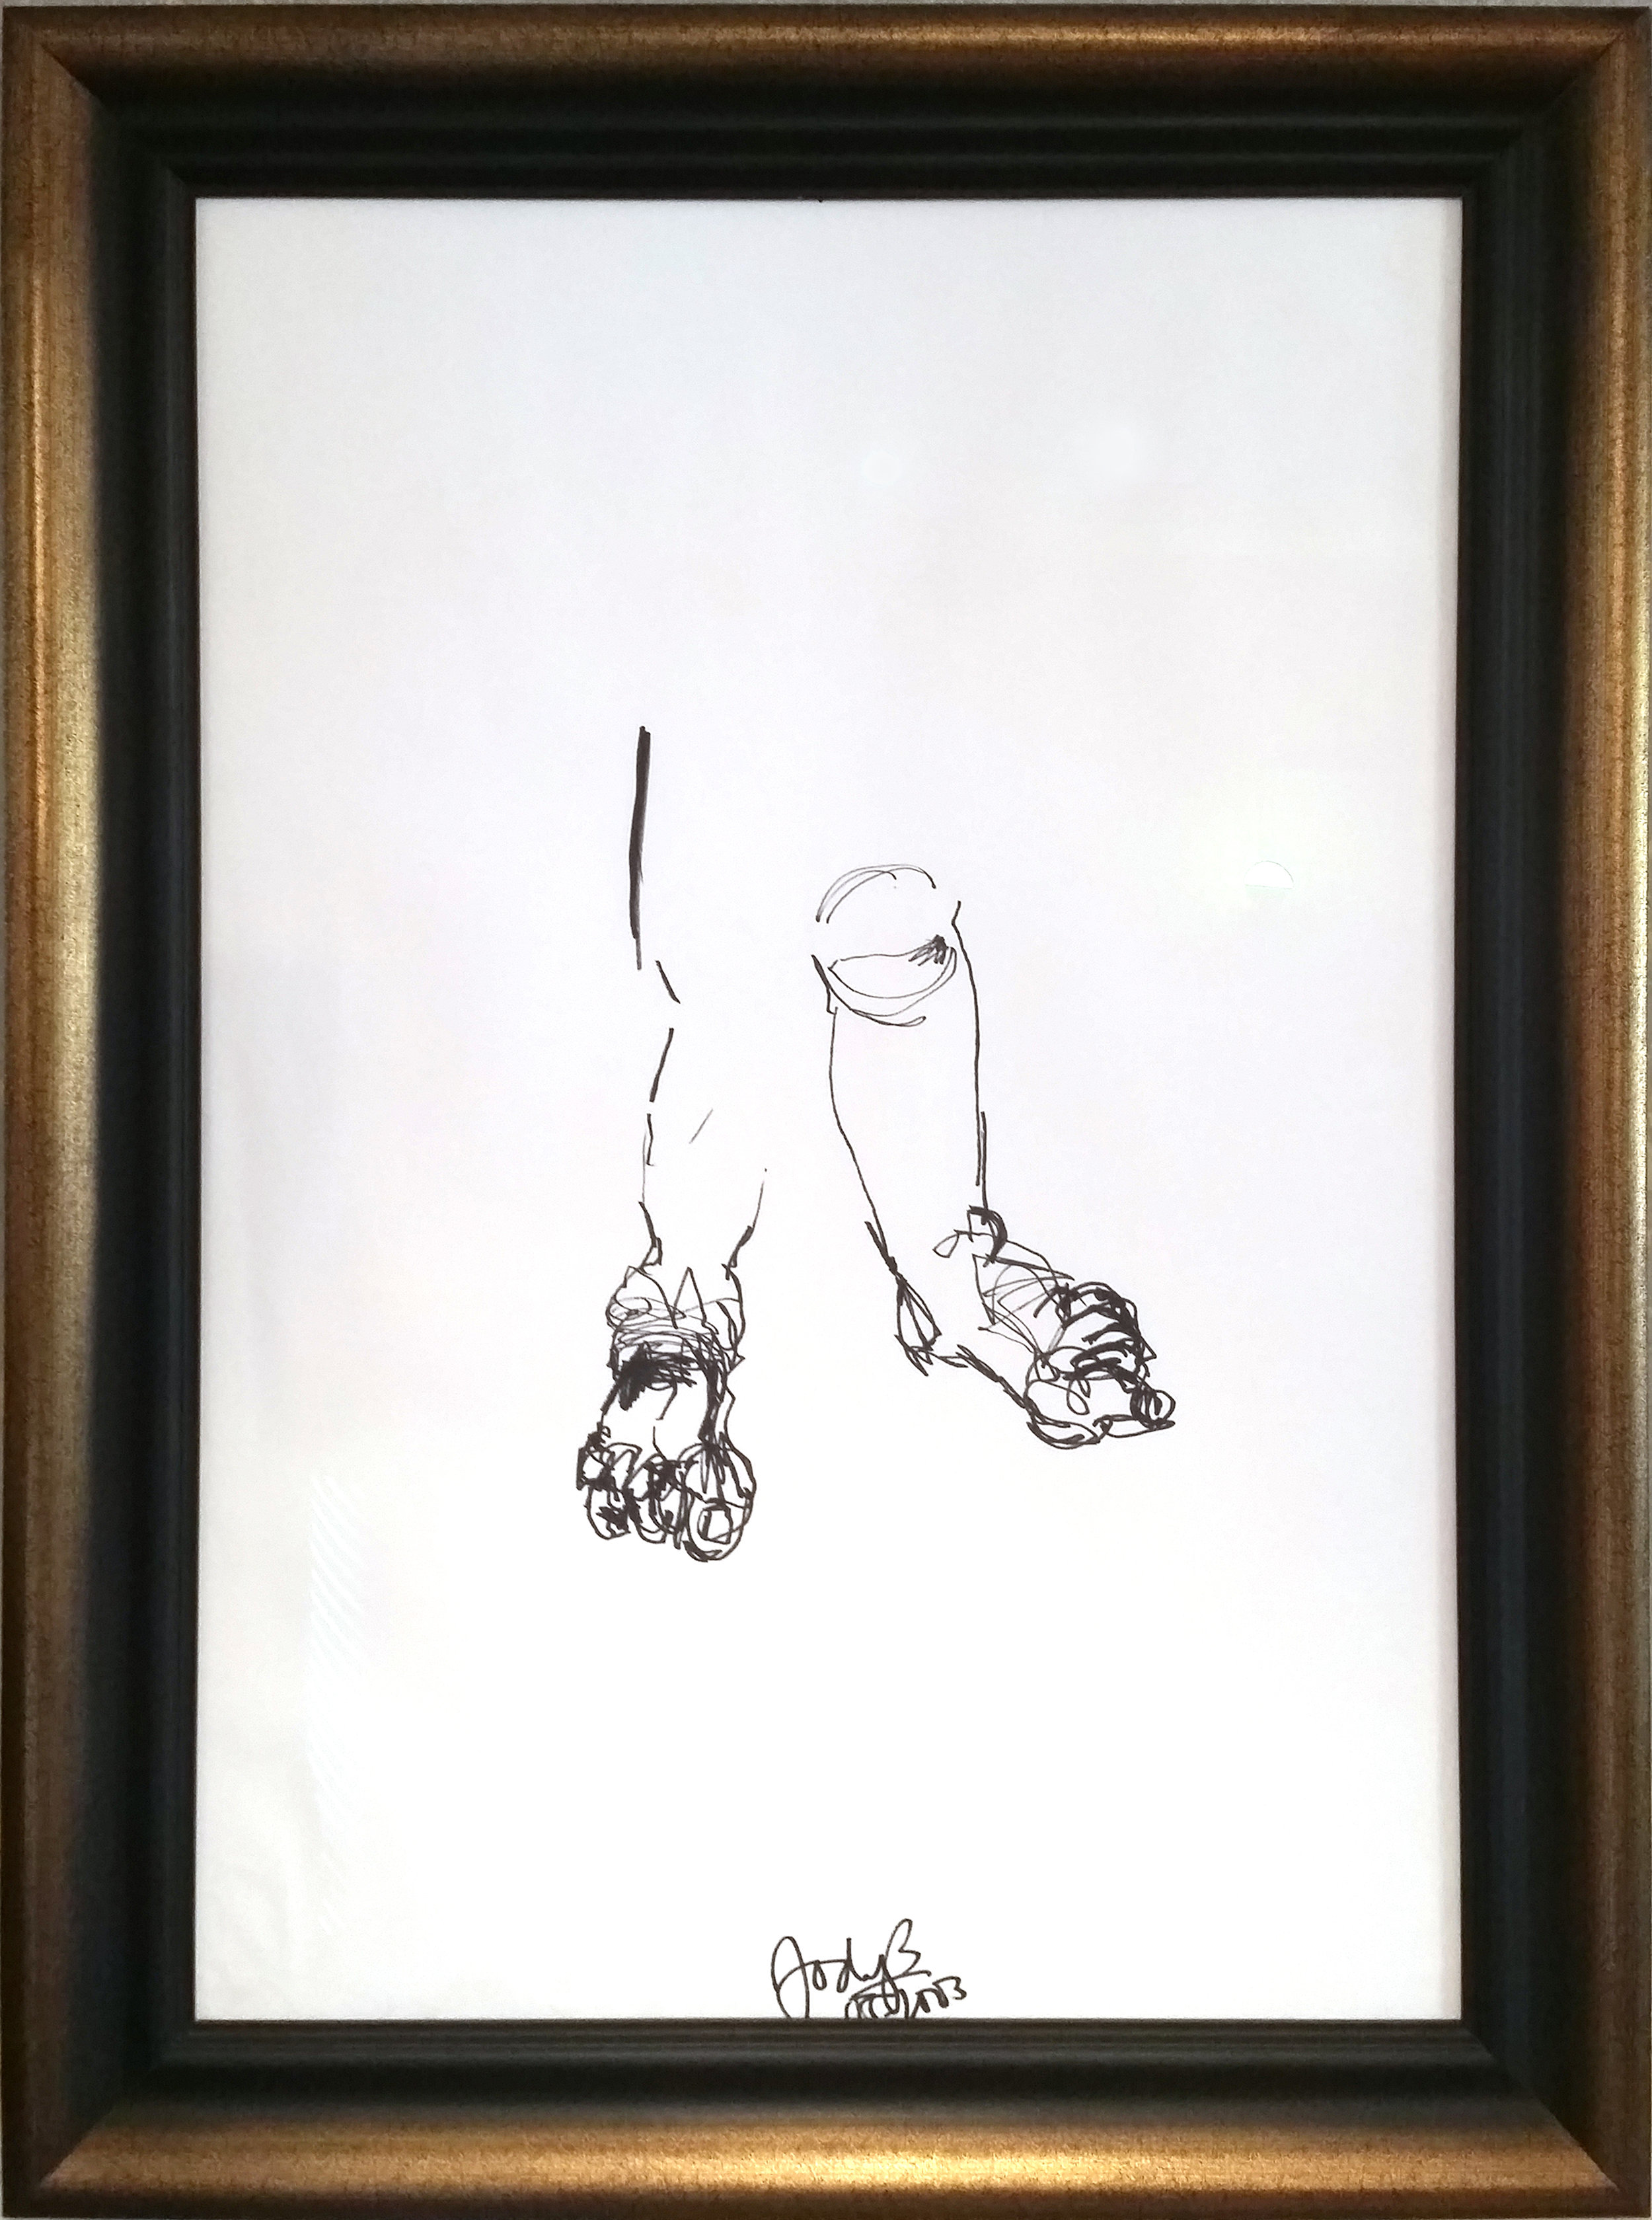 MY FEET - 115 x 85 cm | Edding & ink on paper | Custom framedFinding ground, whilst life is being thoroughly experienced - Self portrait.